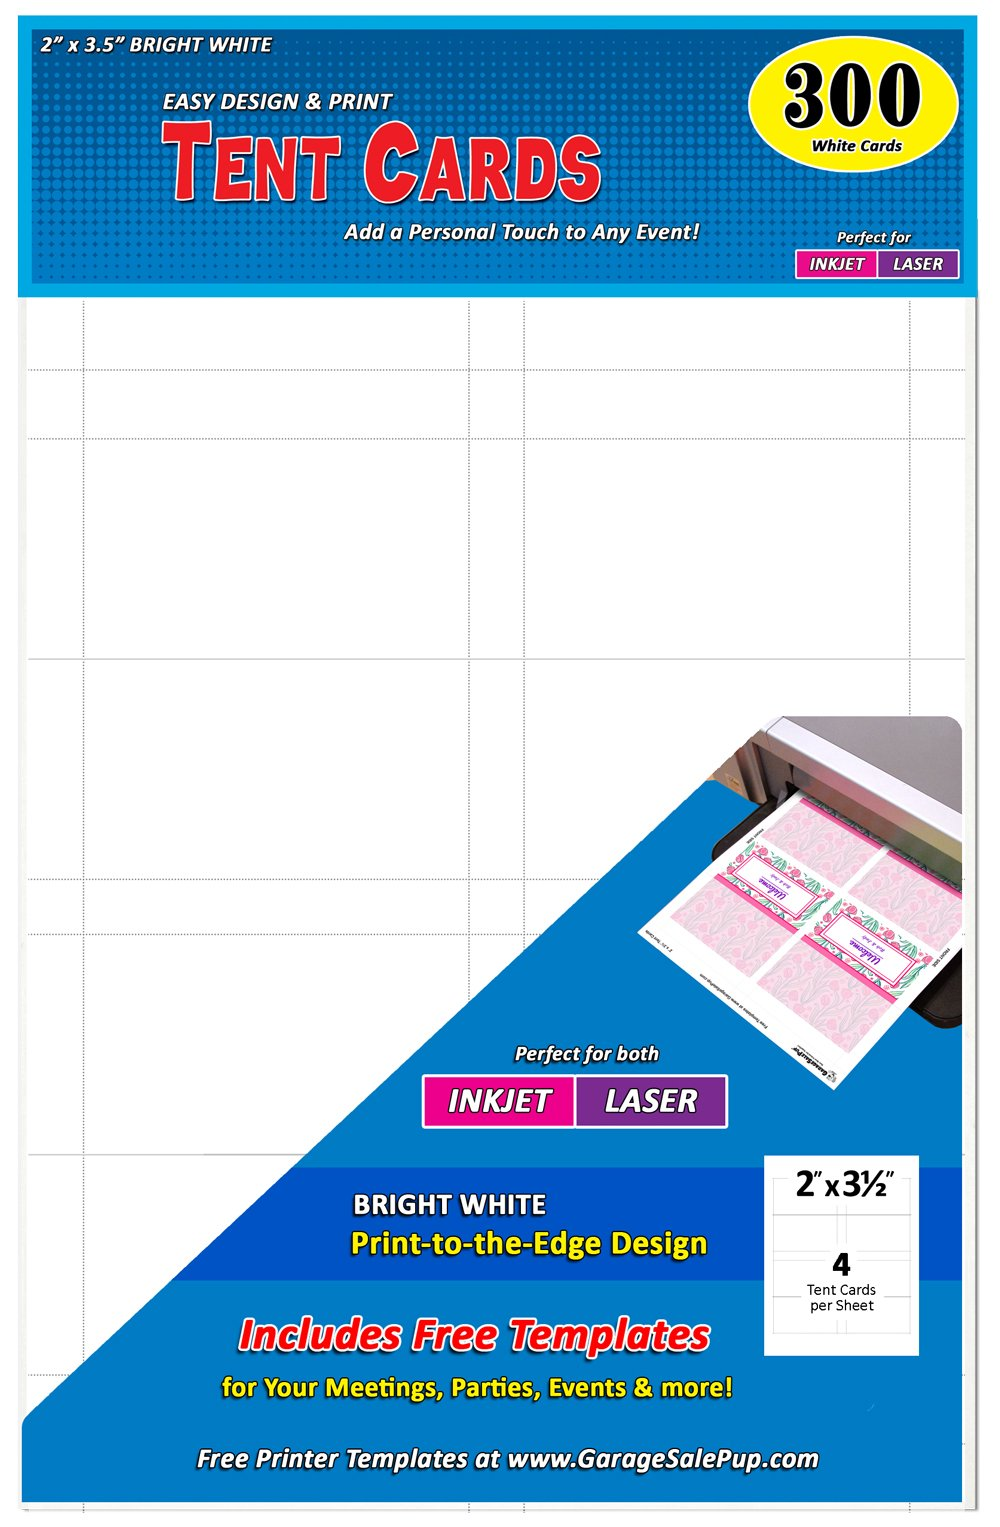 Pack of 300 Small Tent Cards, 2 x 3.5 inches, White, Laser & Inkjet by Garage Sale Pup